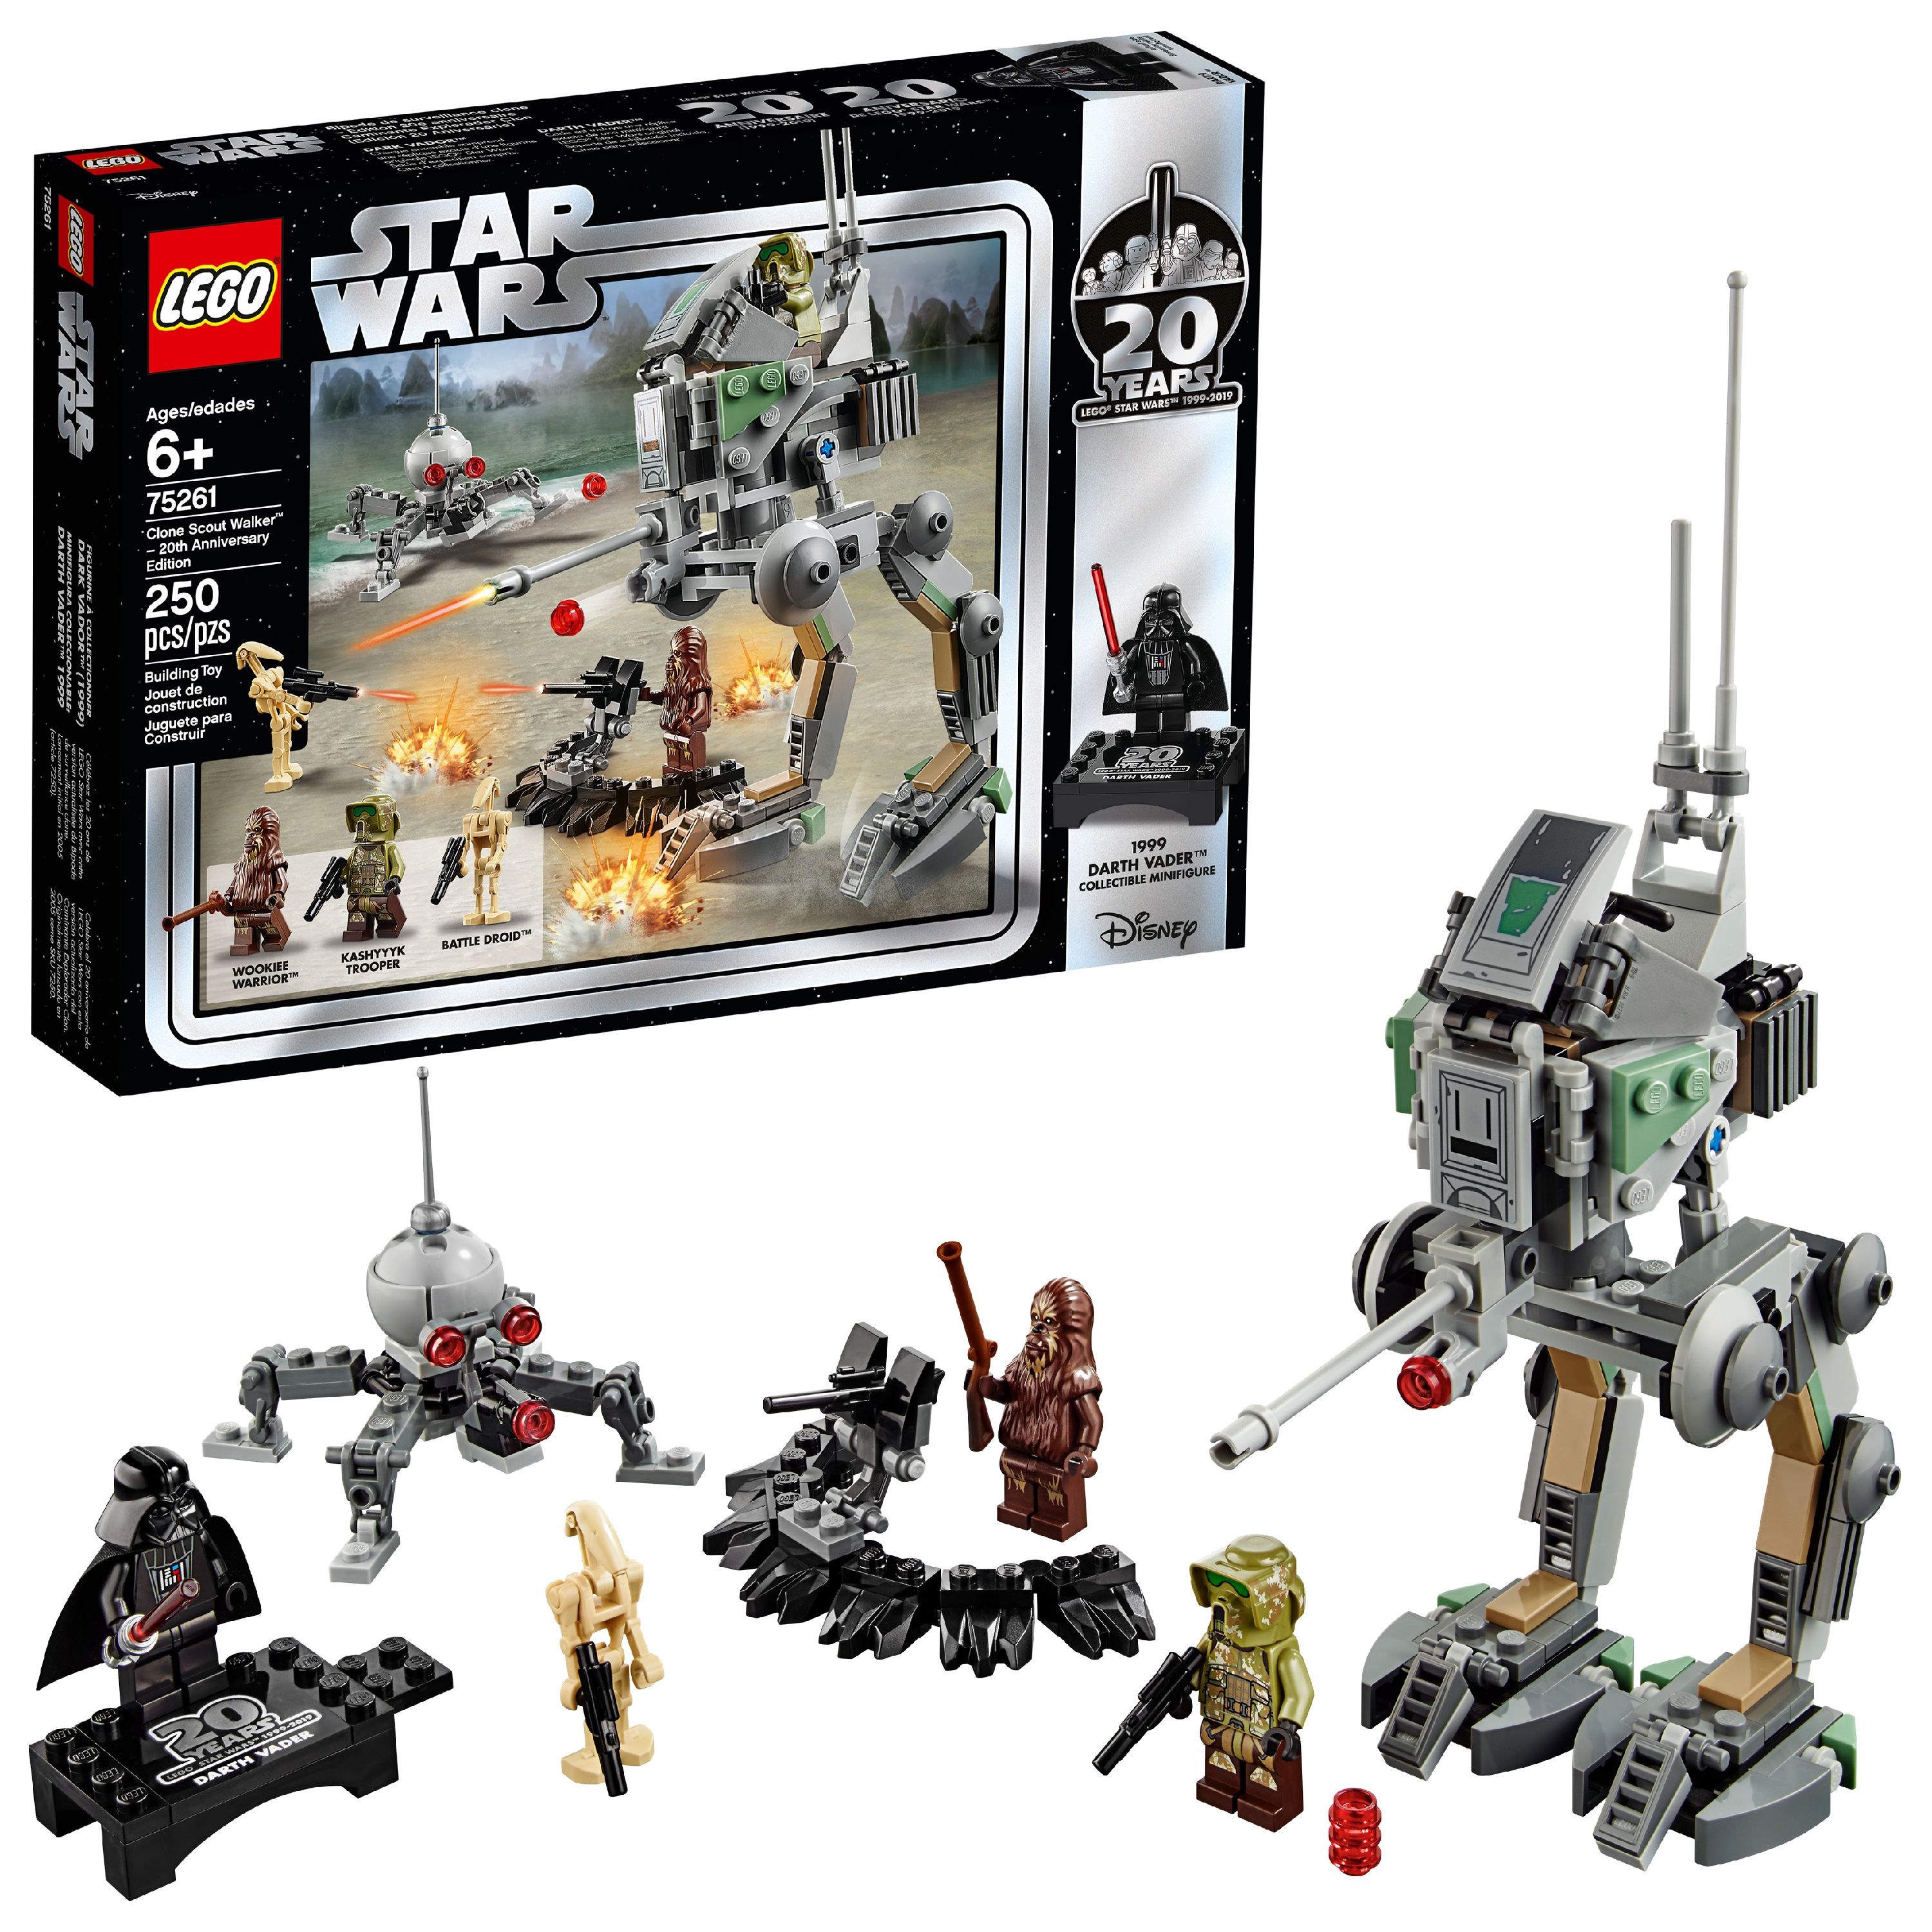 LEGO Star Wars TM 20th Anniversary Edition Clone Scout Walker 75261